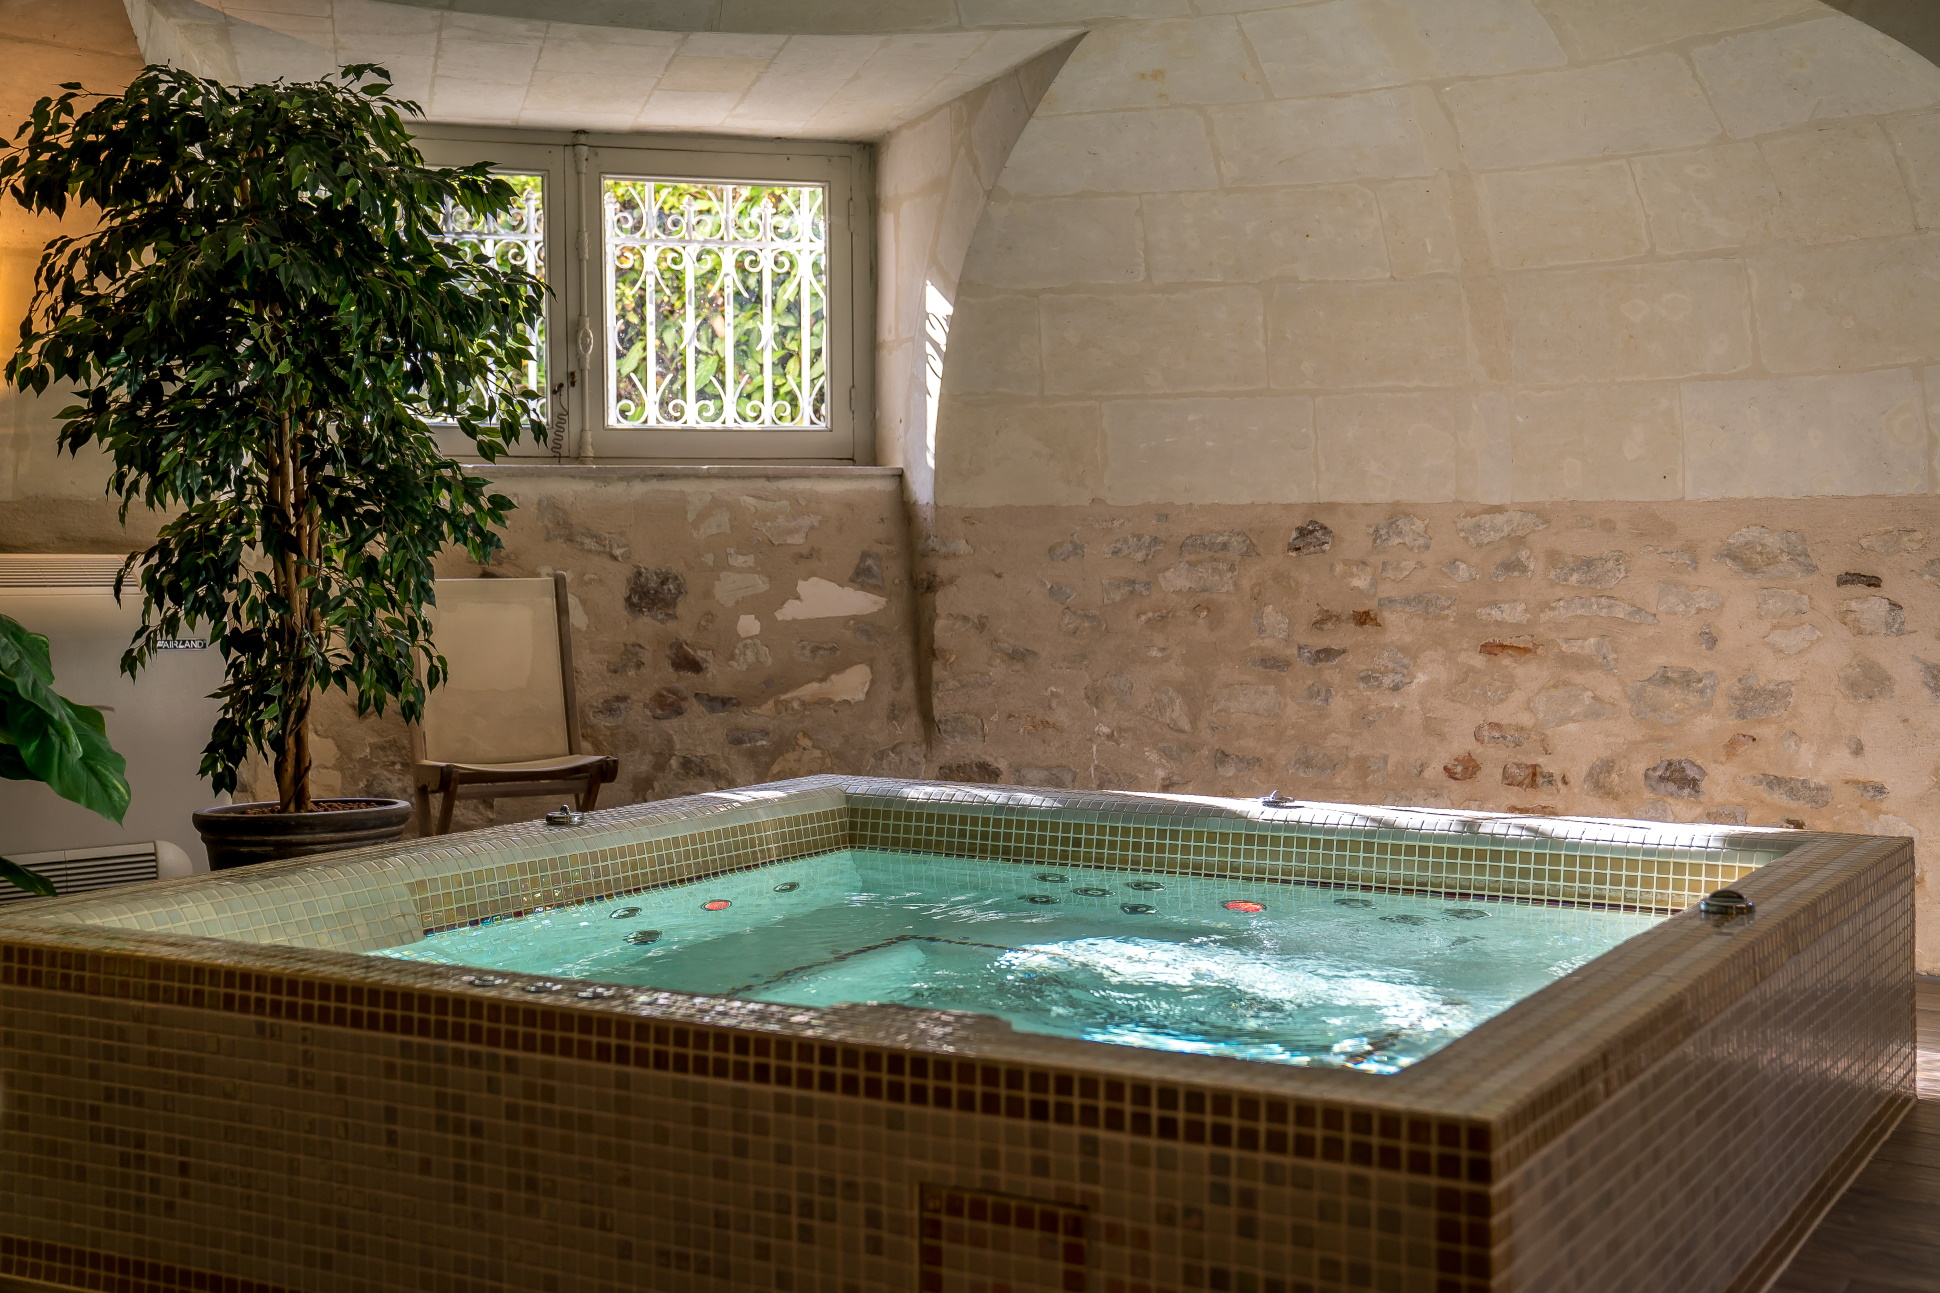 127/piscine  spa/9705-_Chateau_de_Verrieres-44.jpg